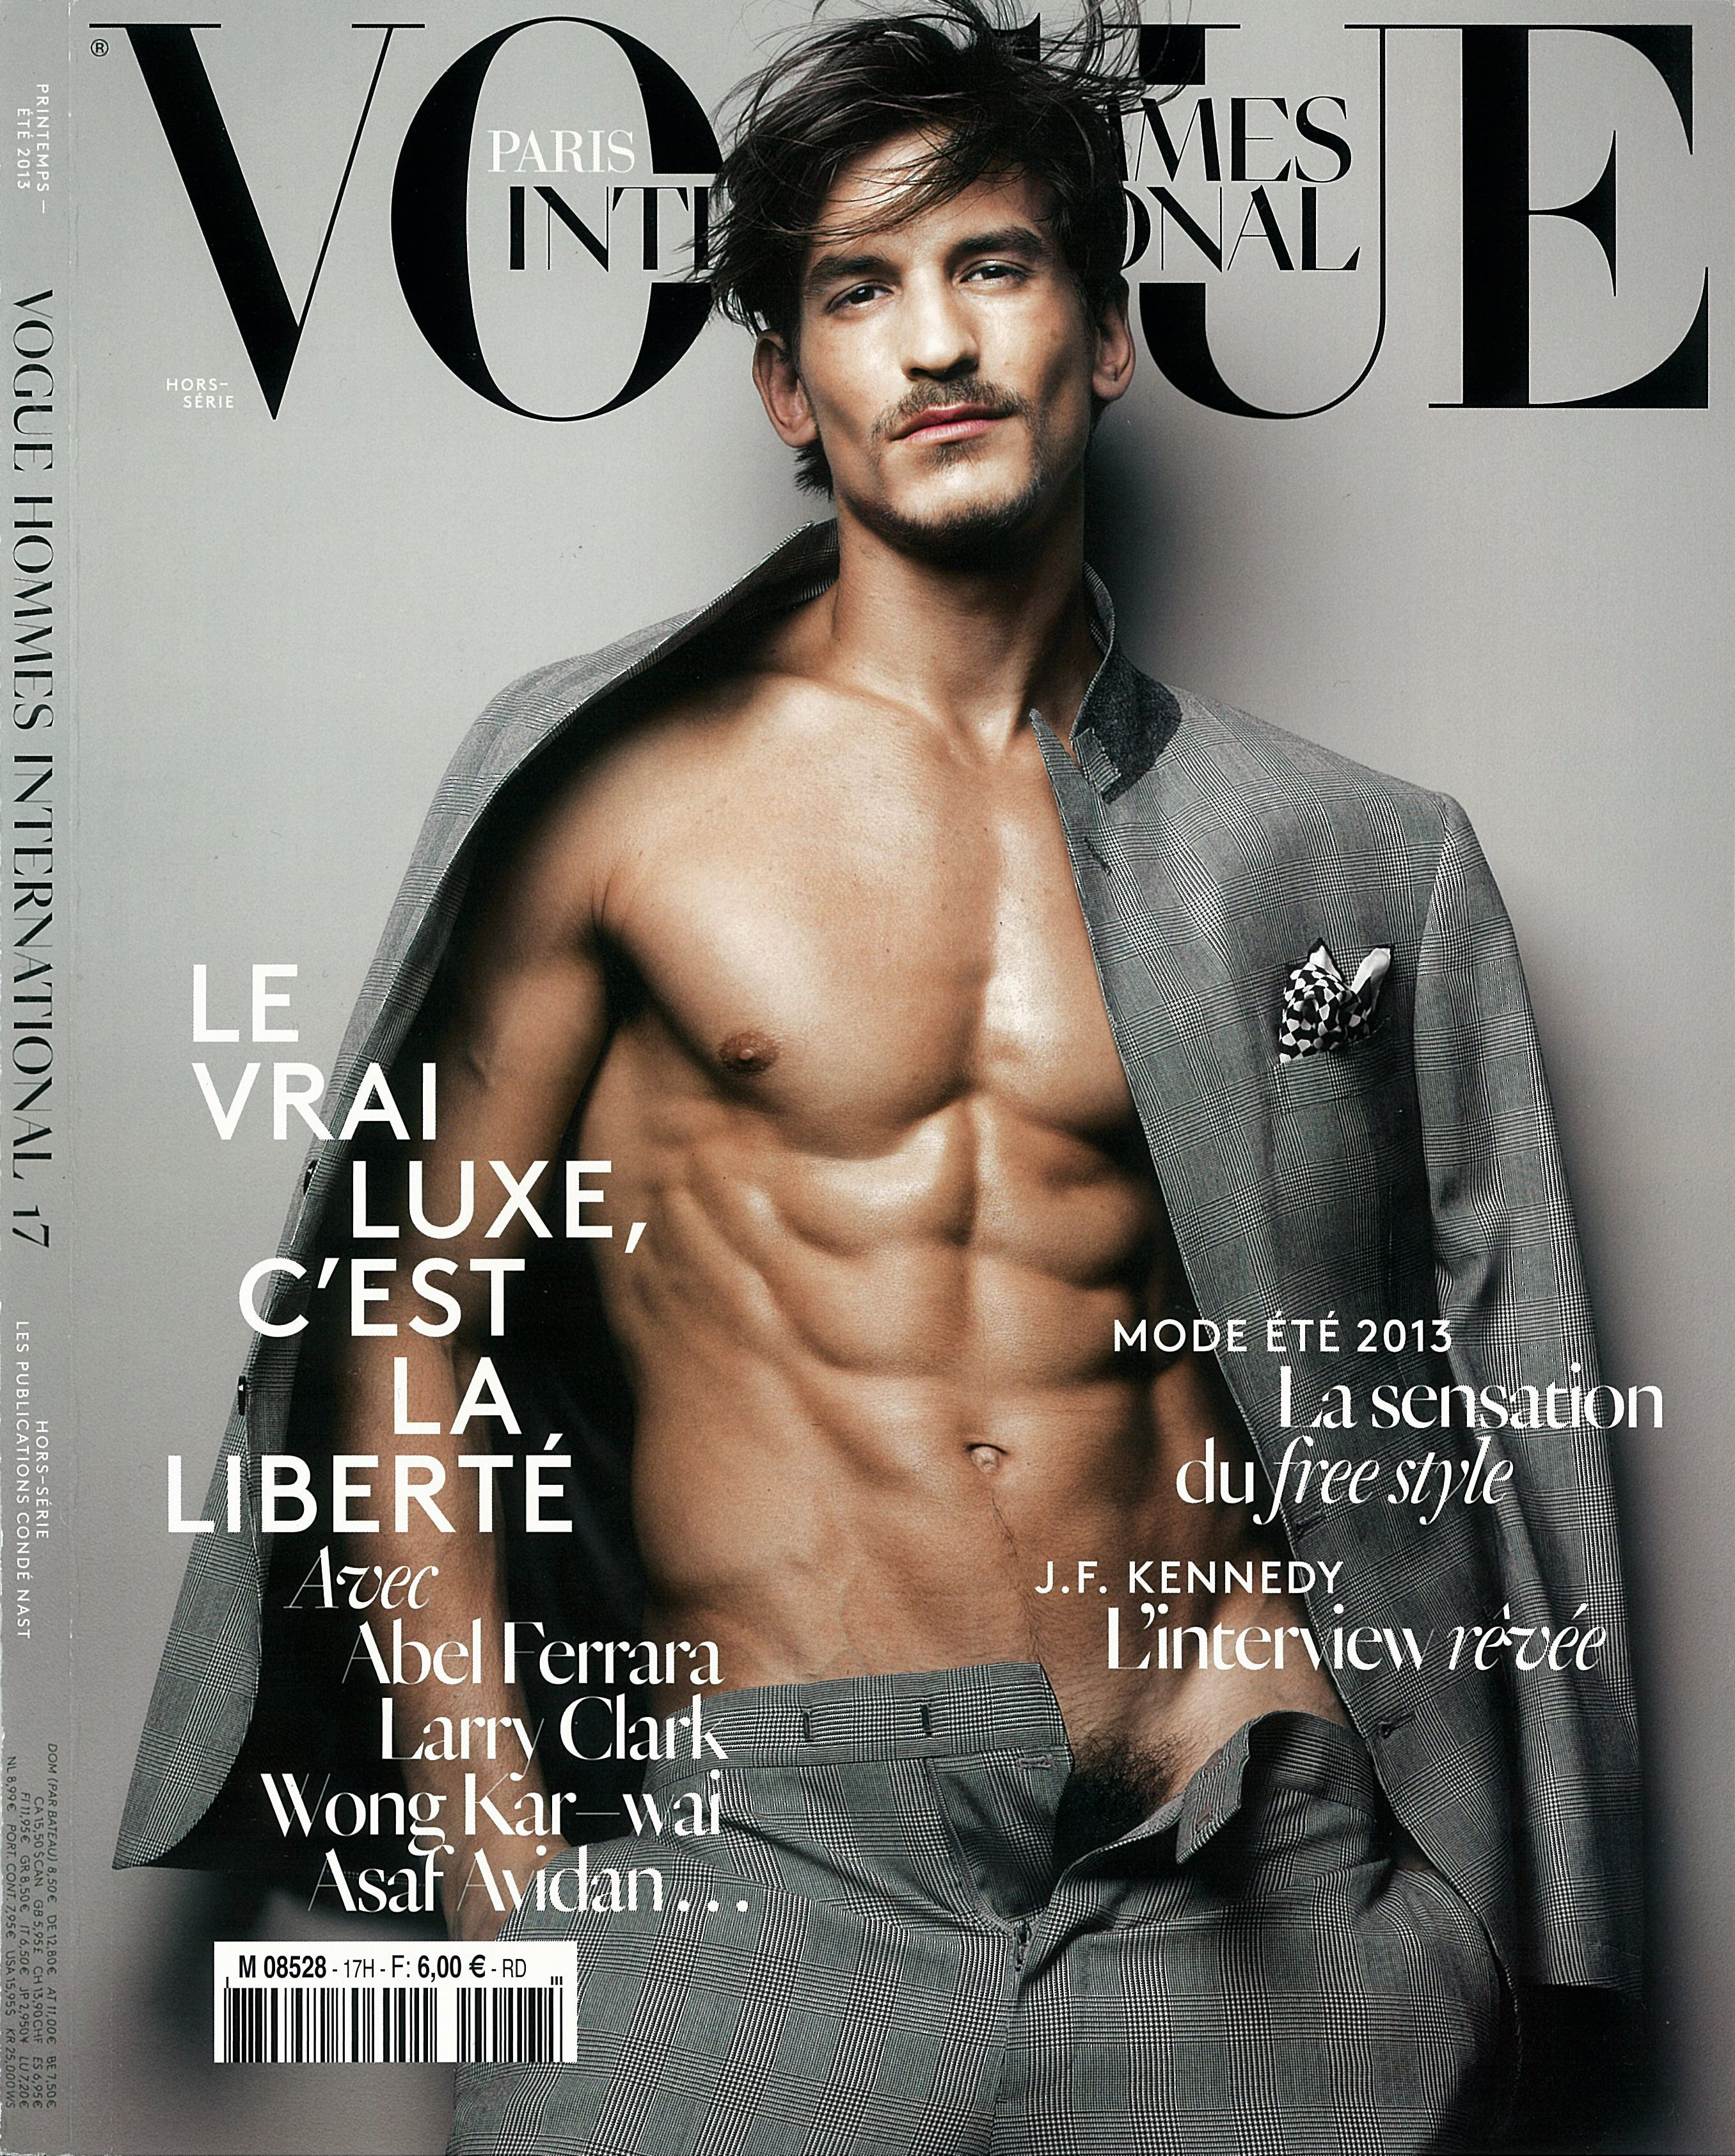 f61f91af289 What happened when we had coffee with cover model Jarrod Scott? Get an  exclusive first look inside the Spring/Summer 2013 Vogue Hommes  International ' ...